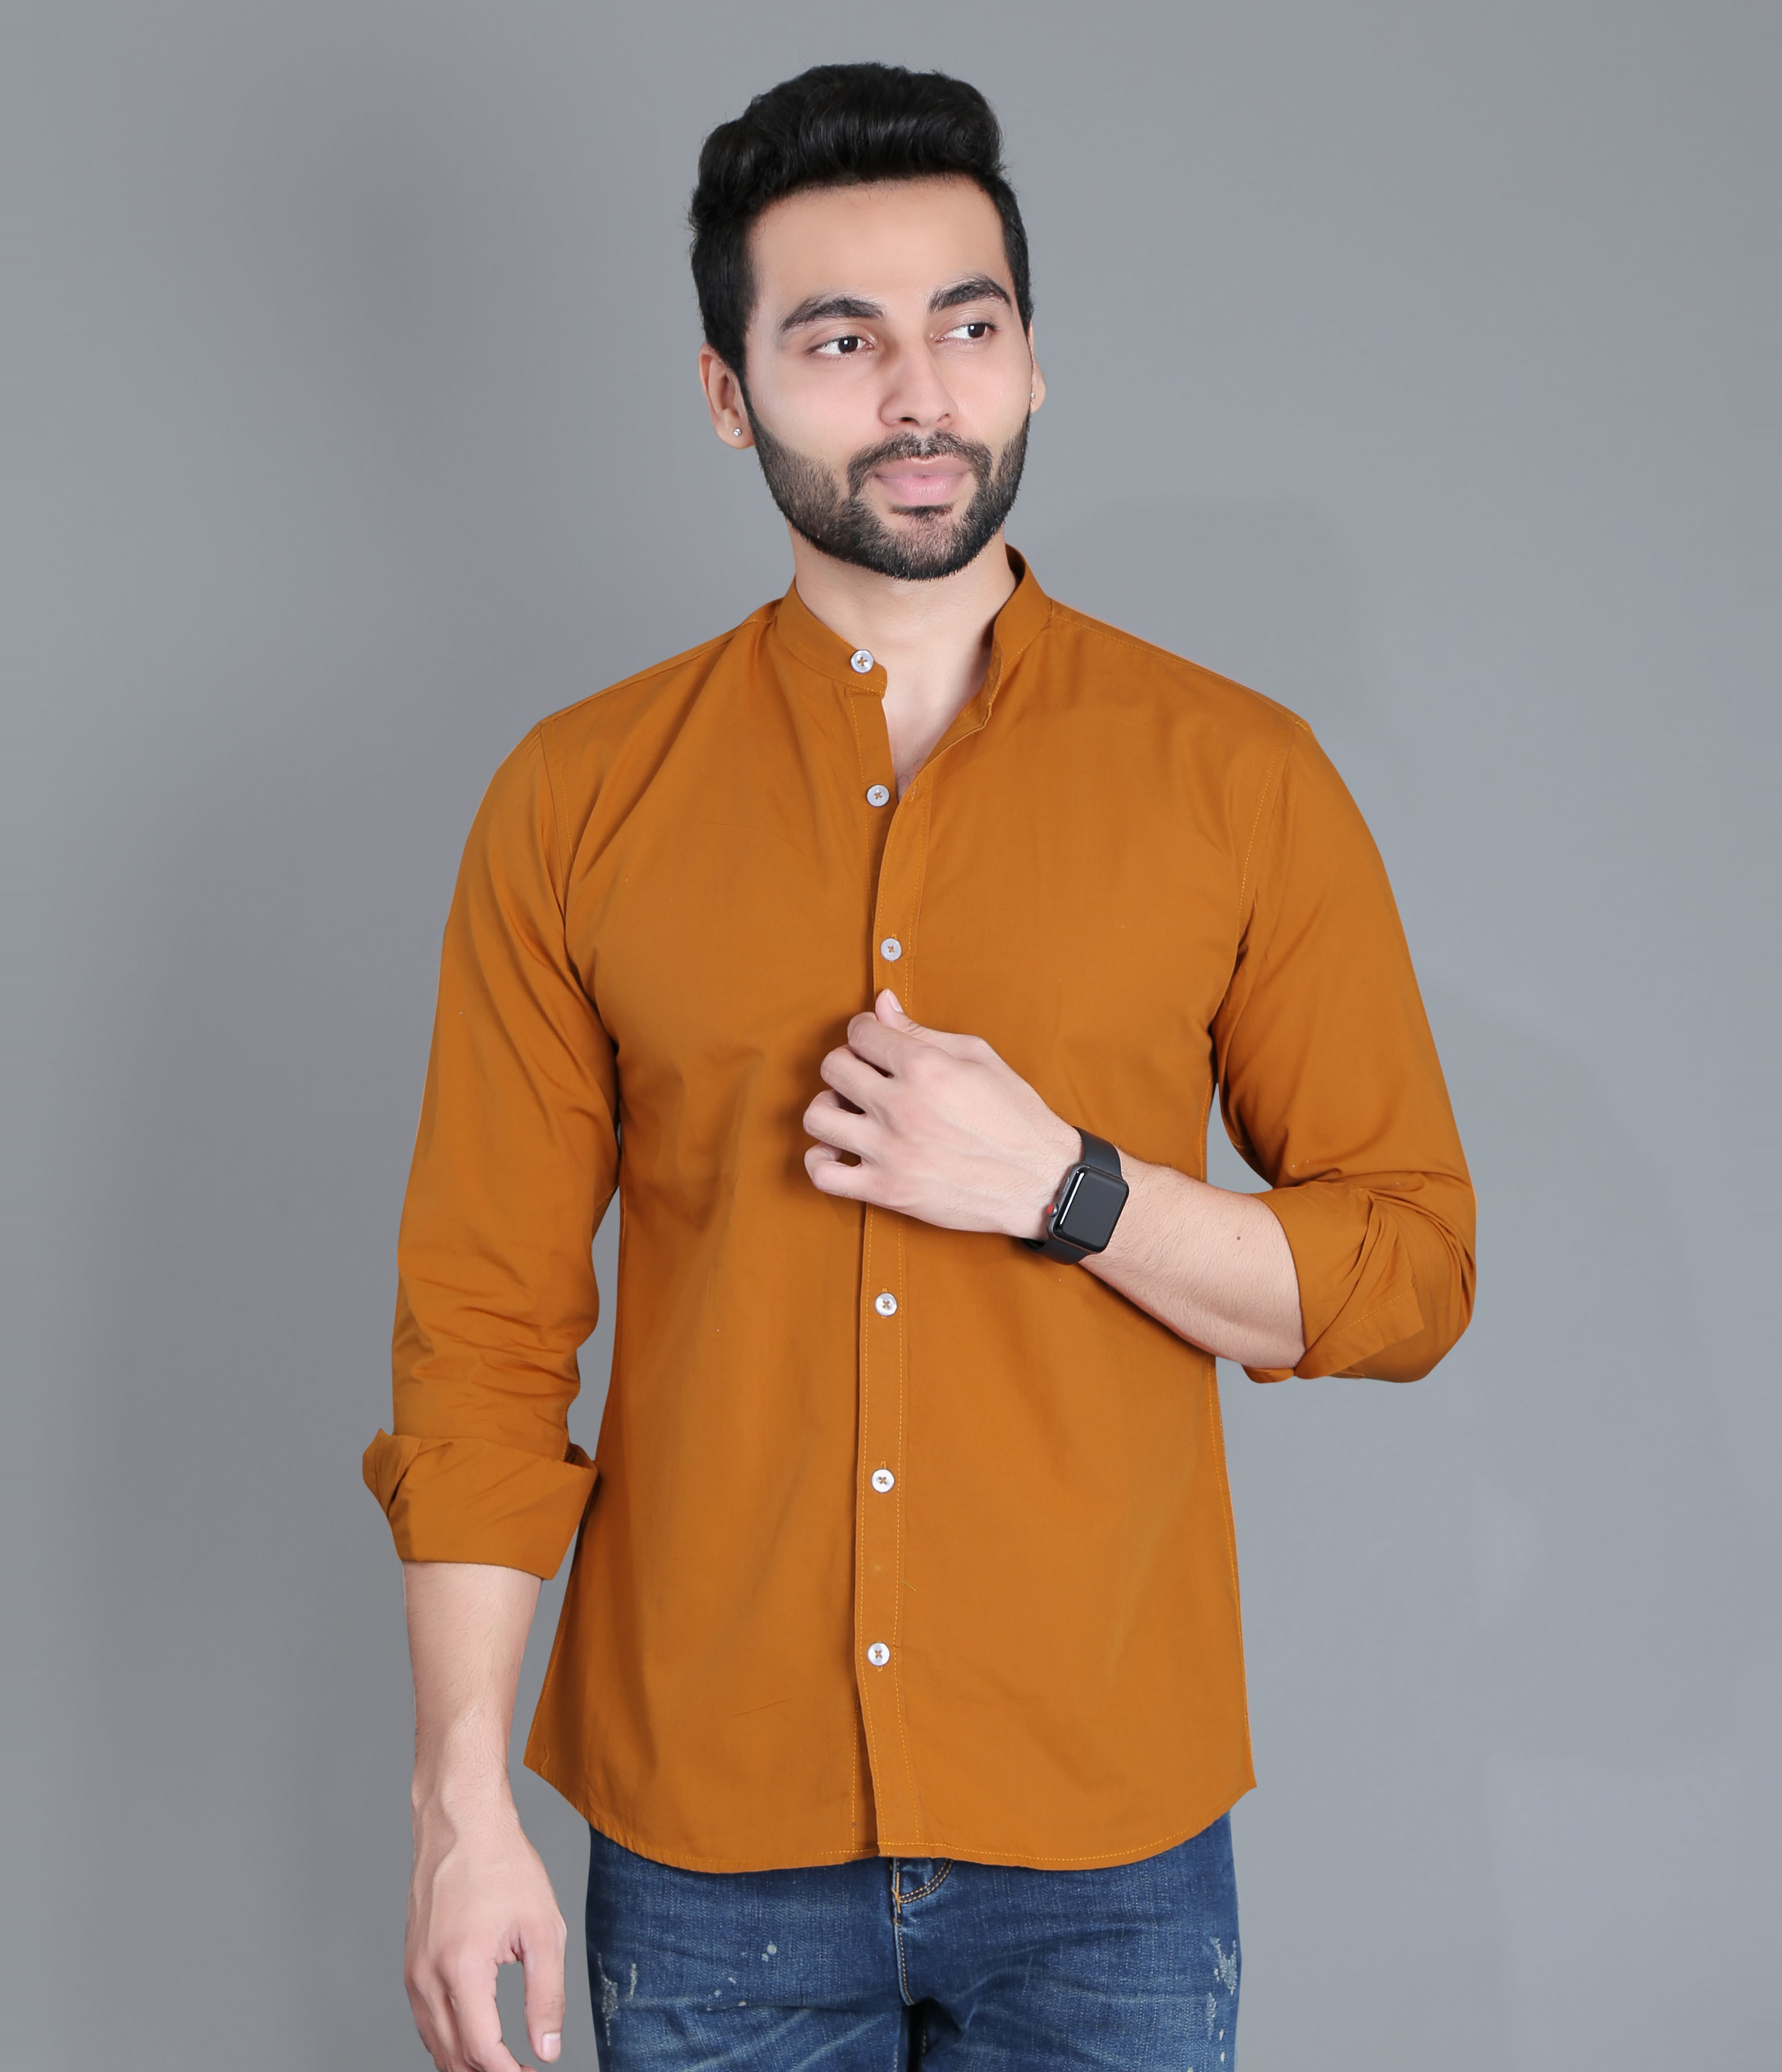 FIFTH ANFOLD Casual Mandrin Collar full Sleev/Long Sleev Copper Brown Pure Cotton Plain Solid Men Shirt